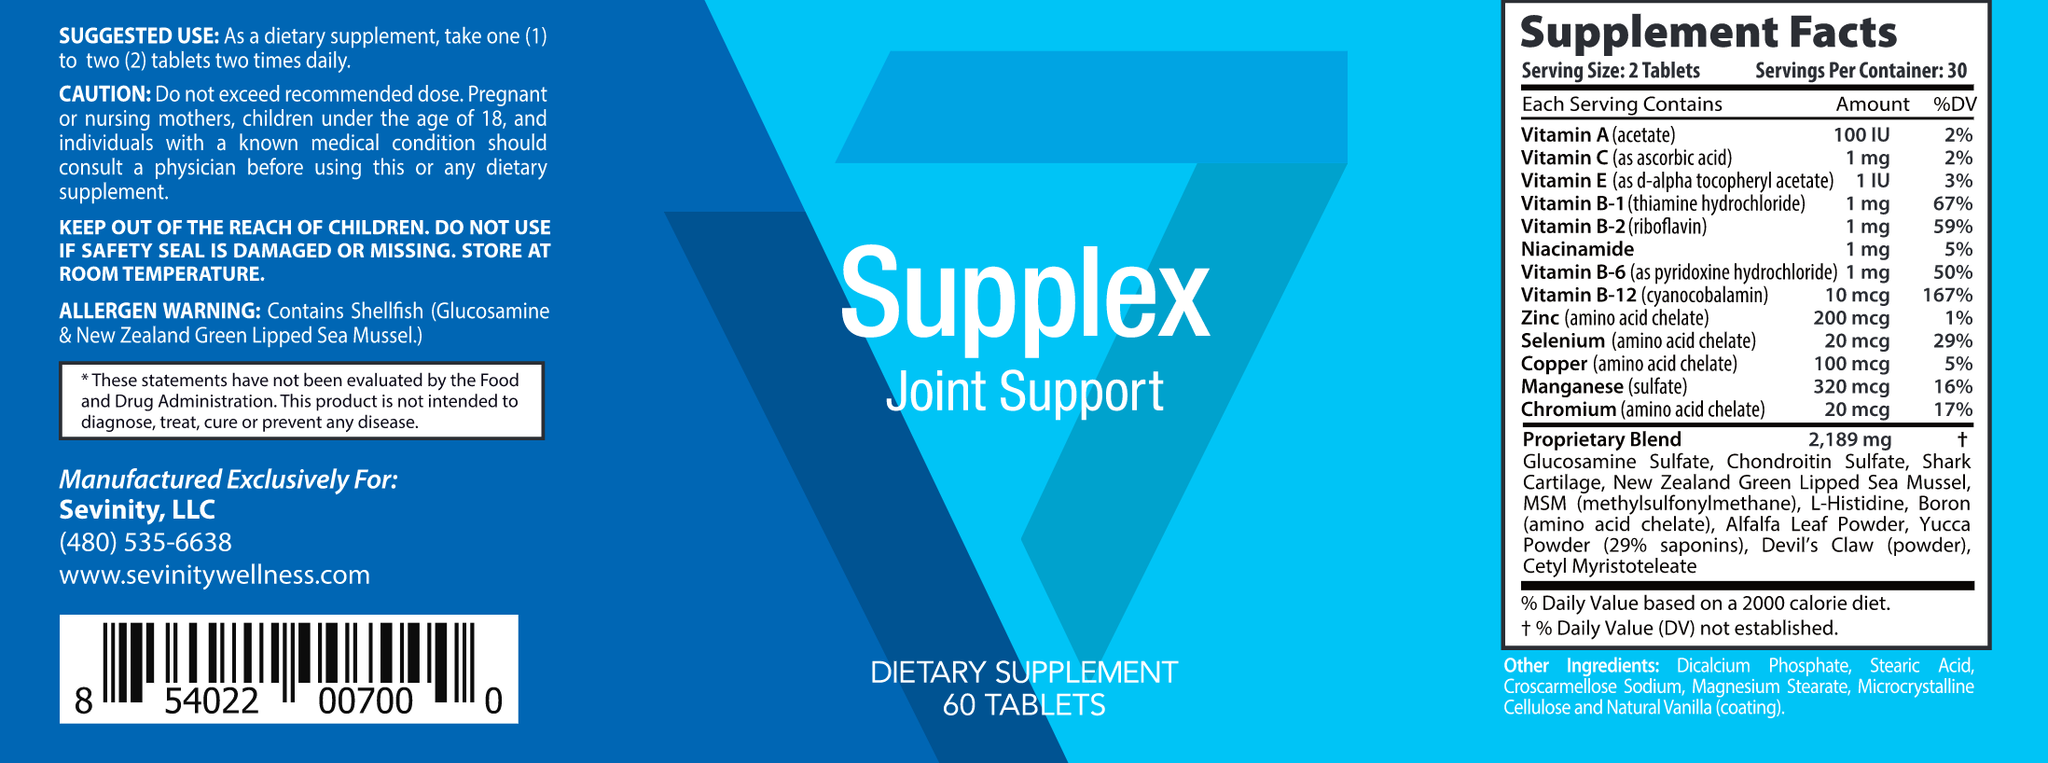 Supplex Joint Support